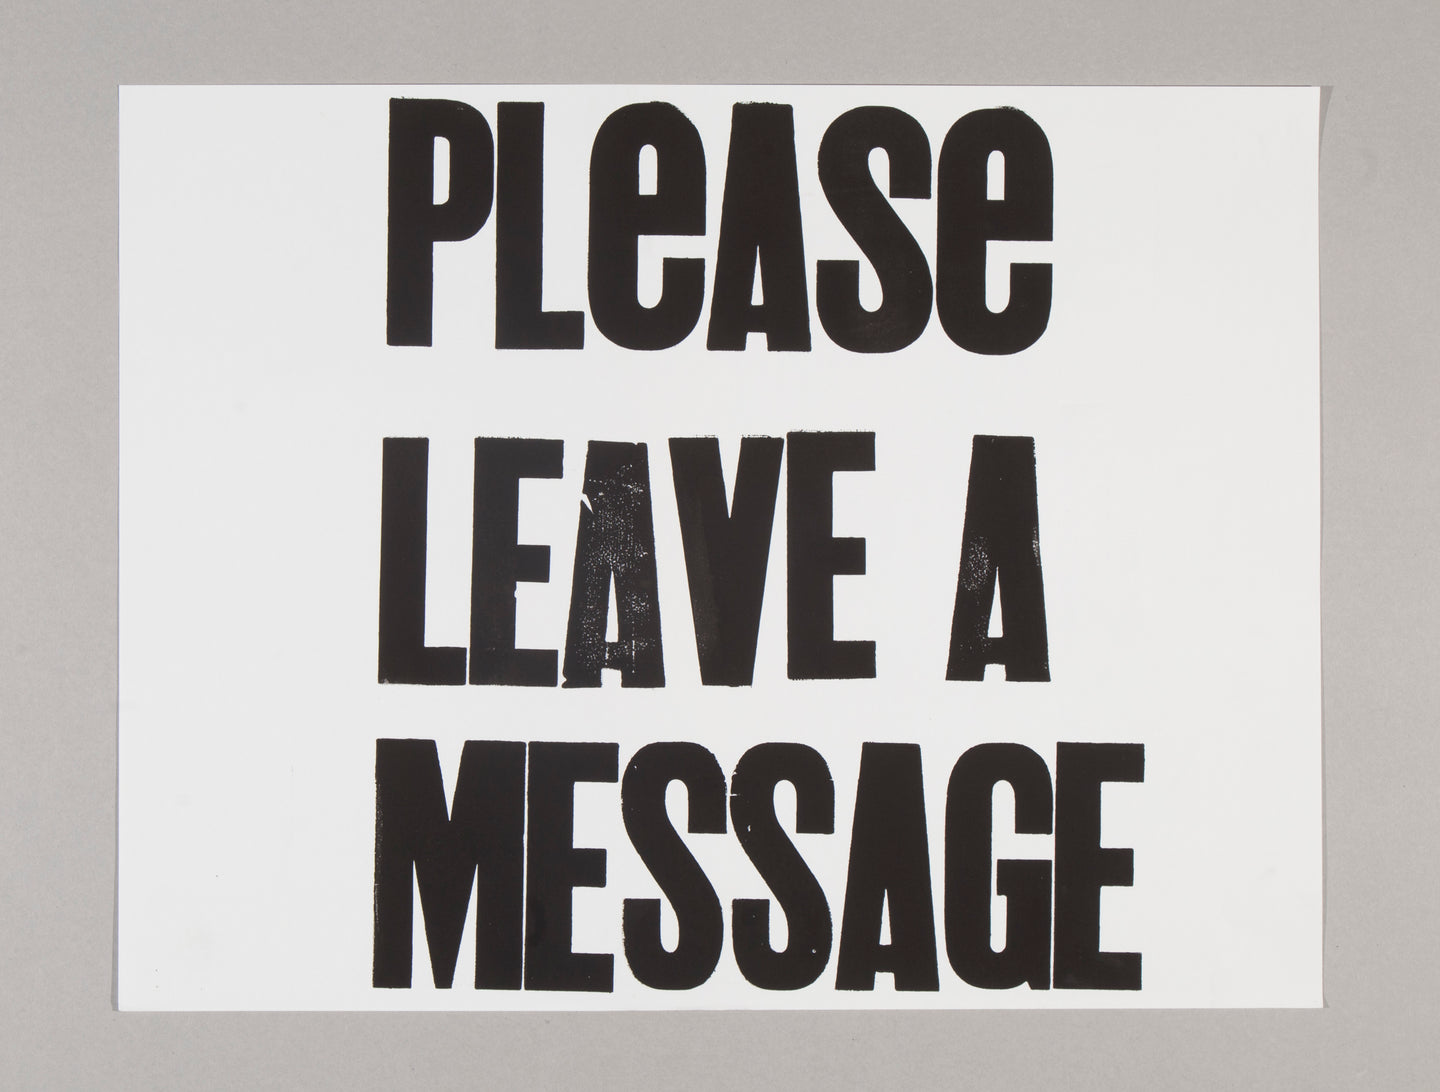 PLEASE LEAVE A MESSAGE